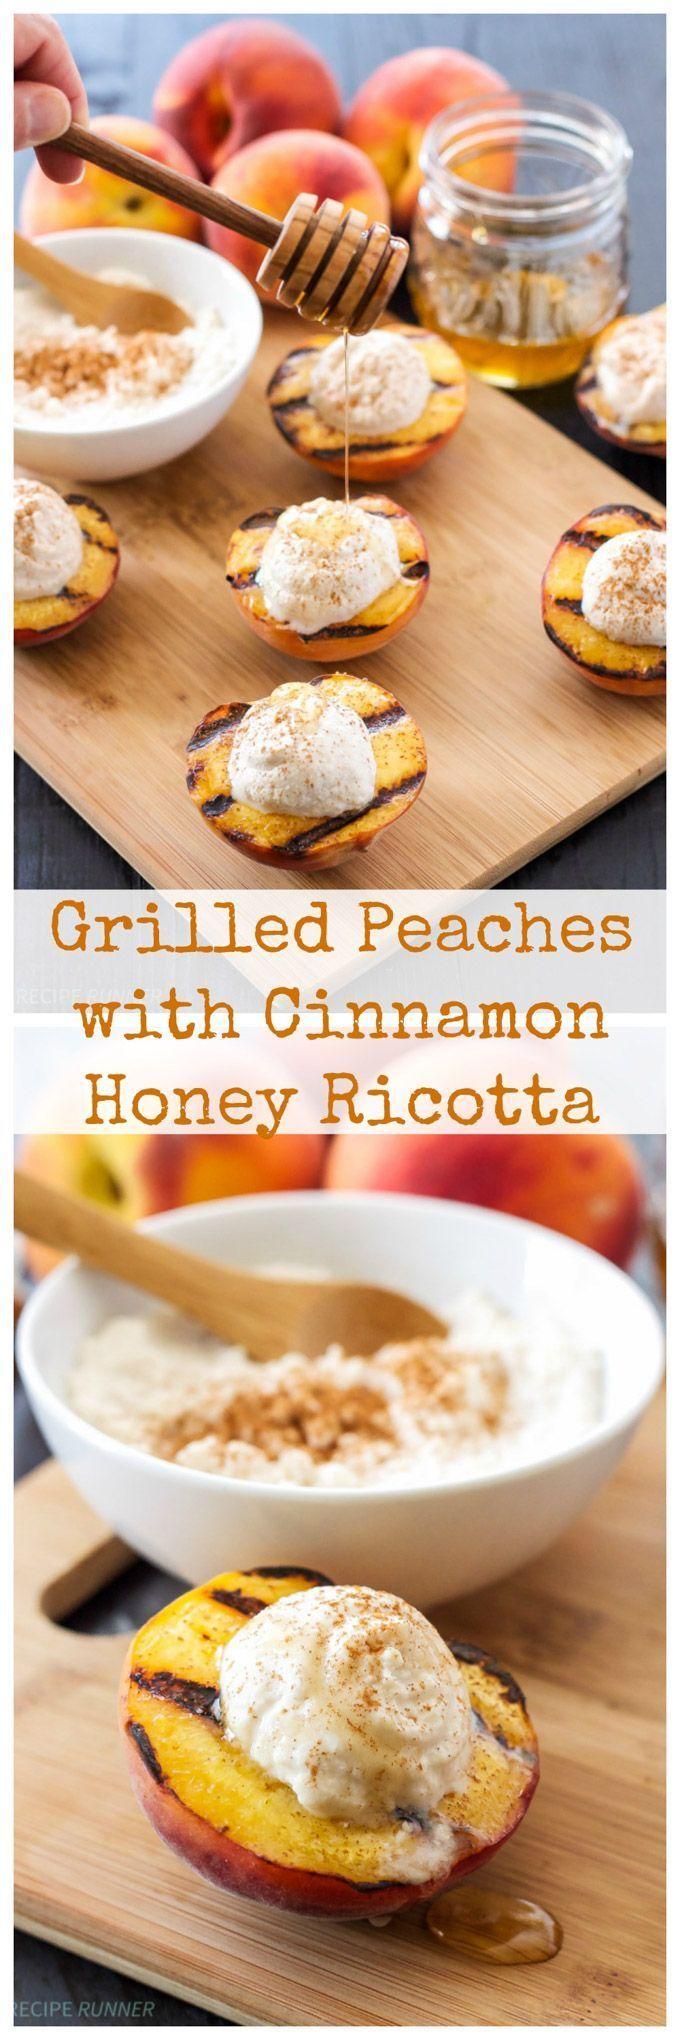 Peaches with Cinnamon Honey Ricotta | This light and not too sweet summer dessert takes only minutes to make and tastes so good!